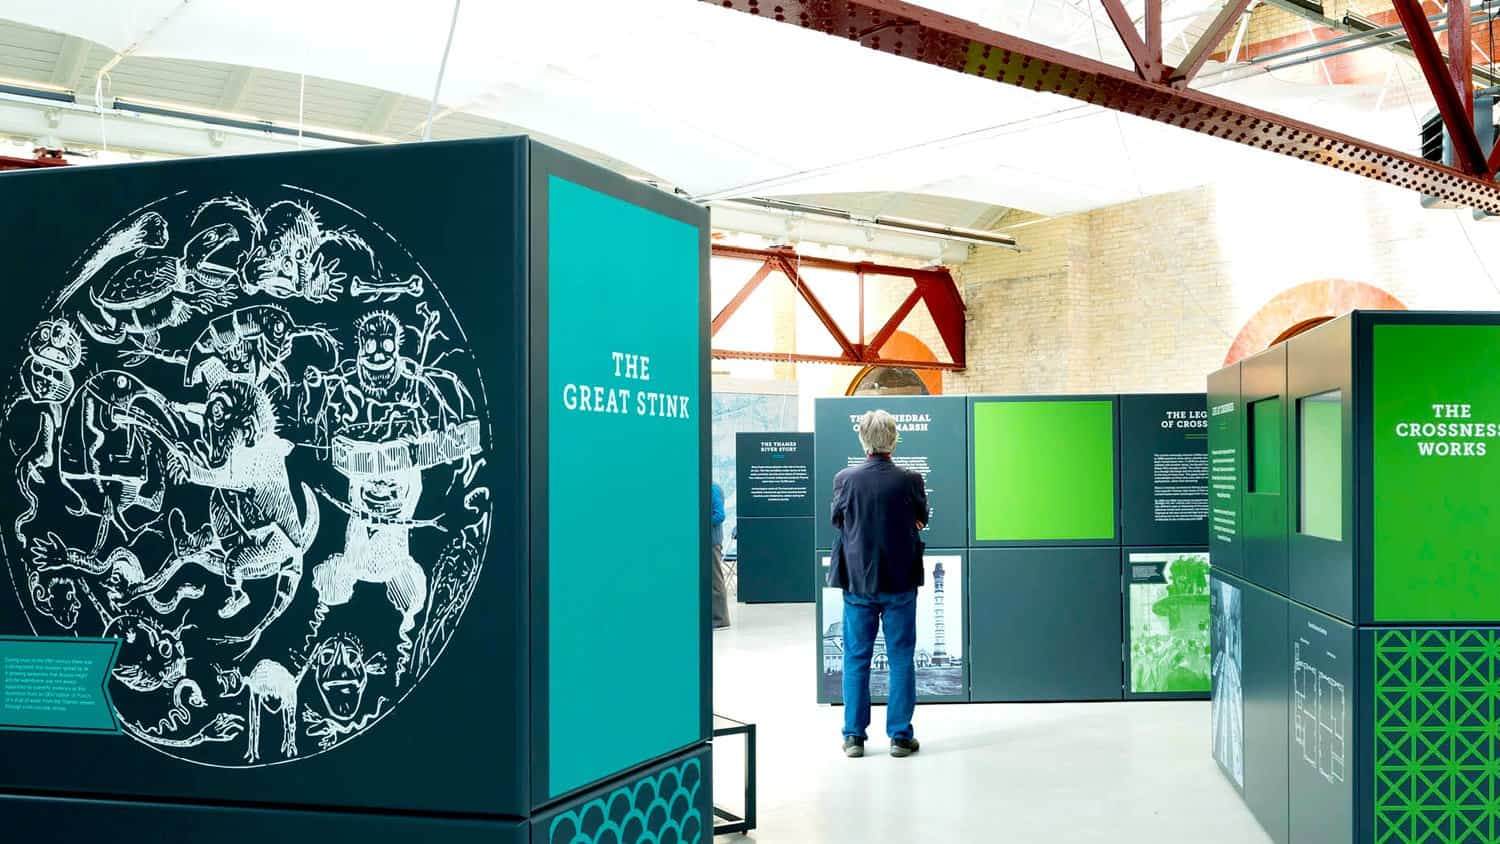 Crossness Pumping Station Interpretation By Panelock Displays, Designmap & Blackbox-av